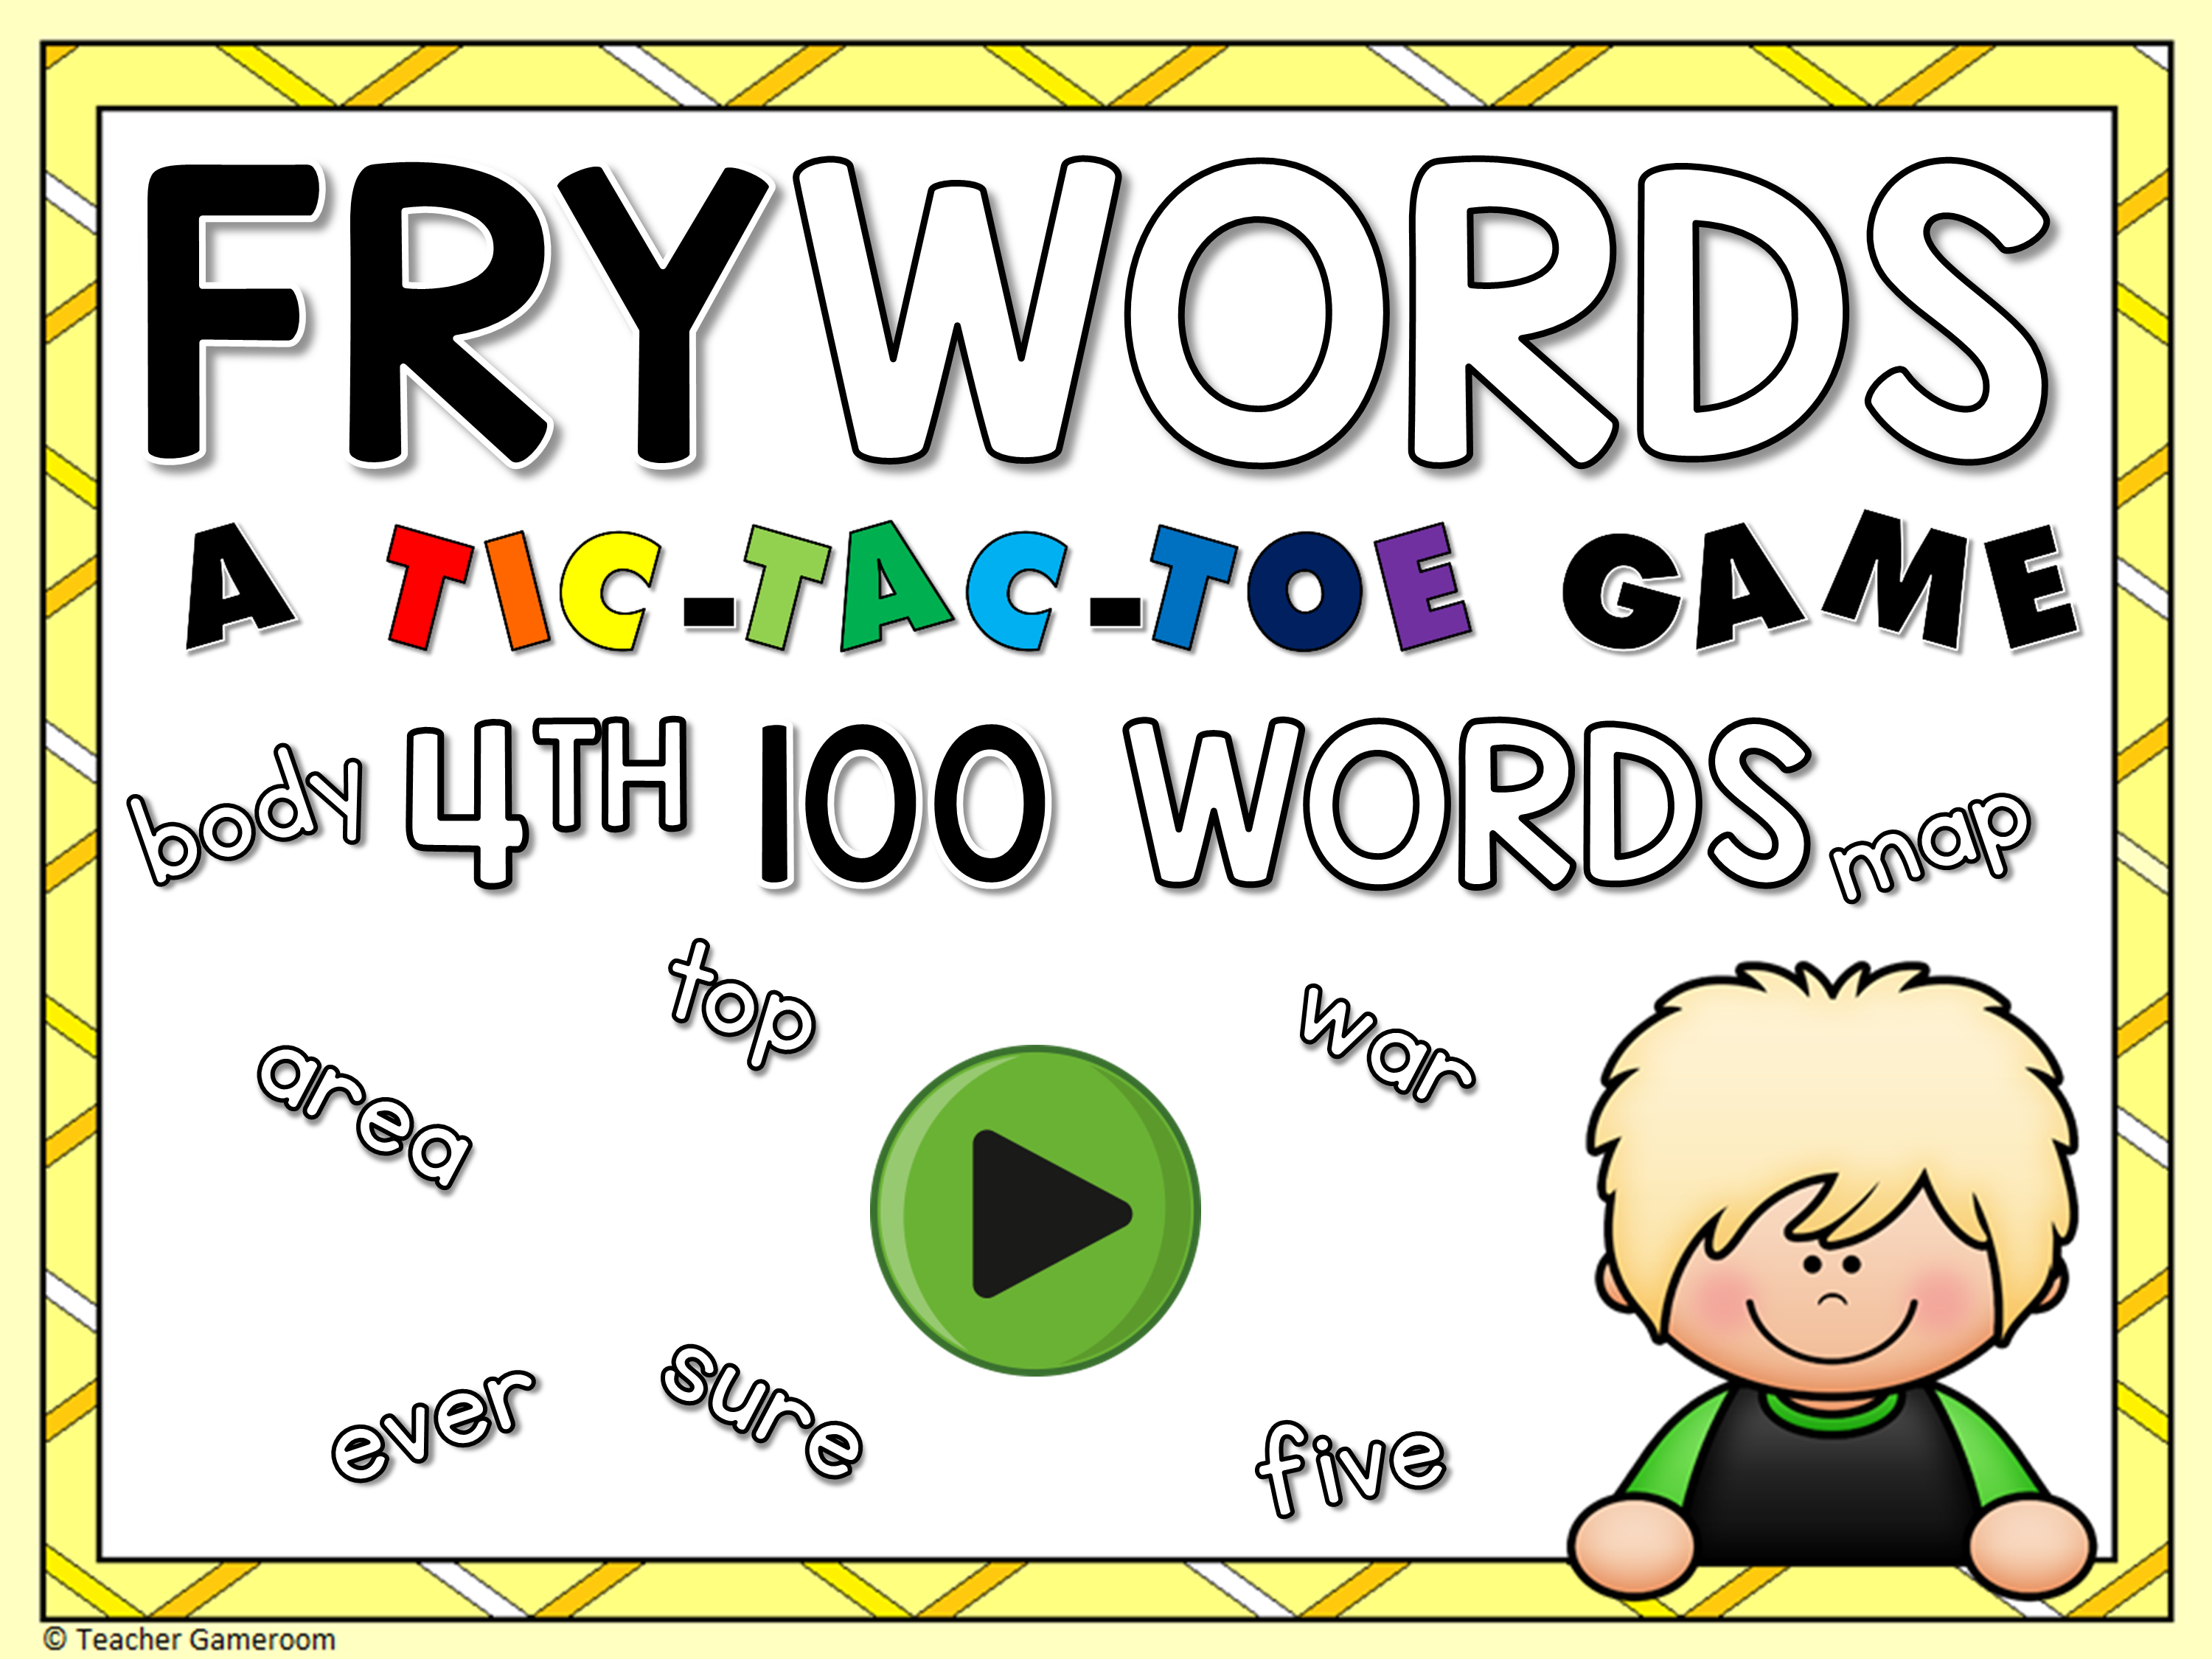 Tic-Tac-Toe Fry Words 4th 100 Game